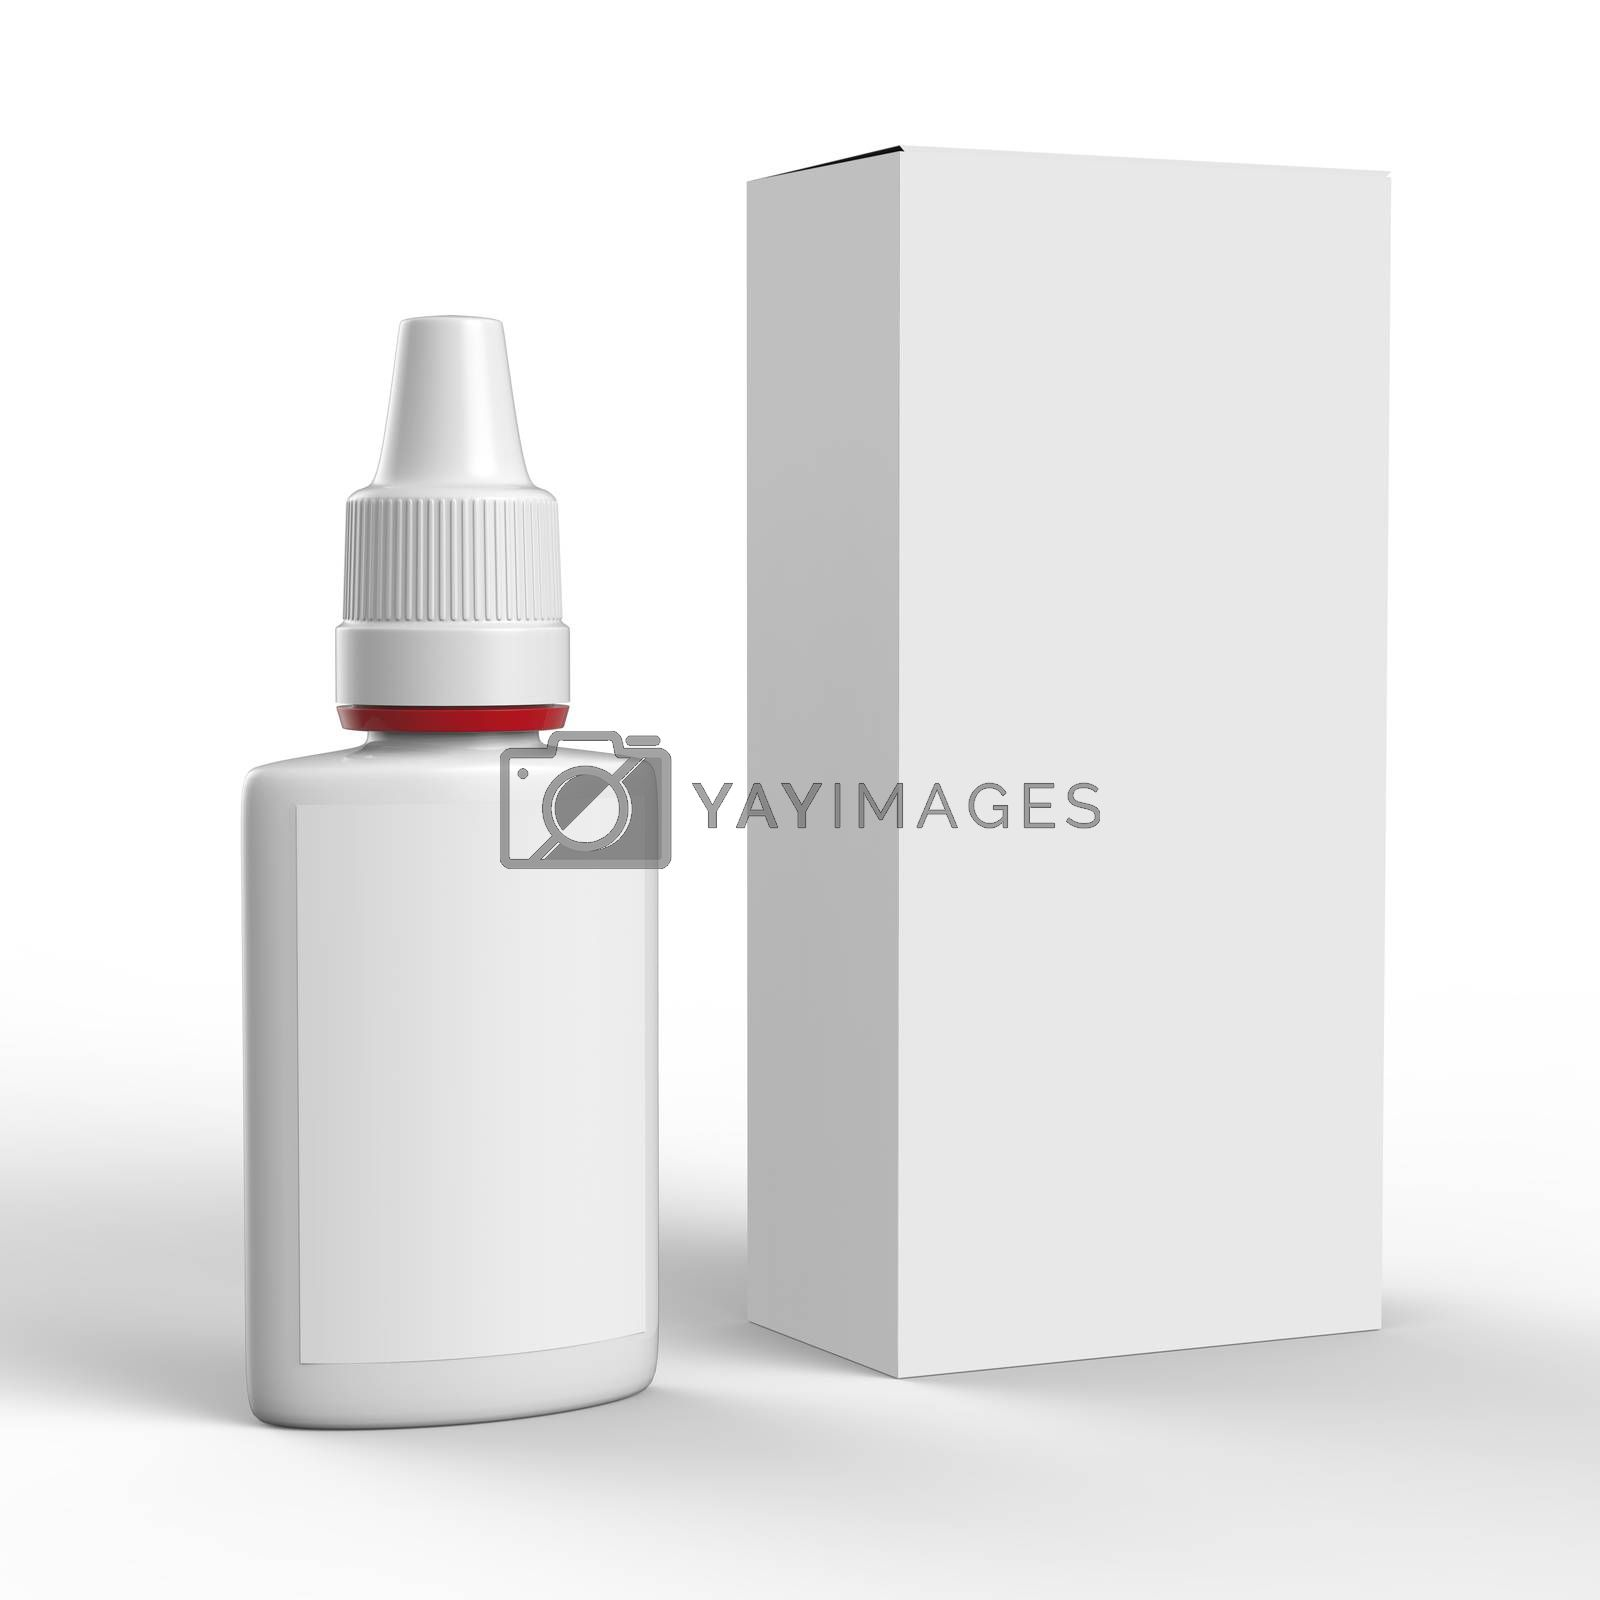 Clean mockup of nasal spray bottle and box isolated on white background. Ready For Your Design.